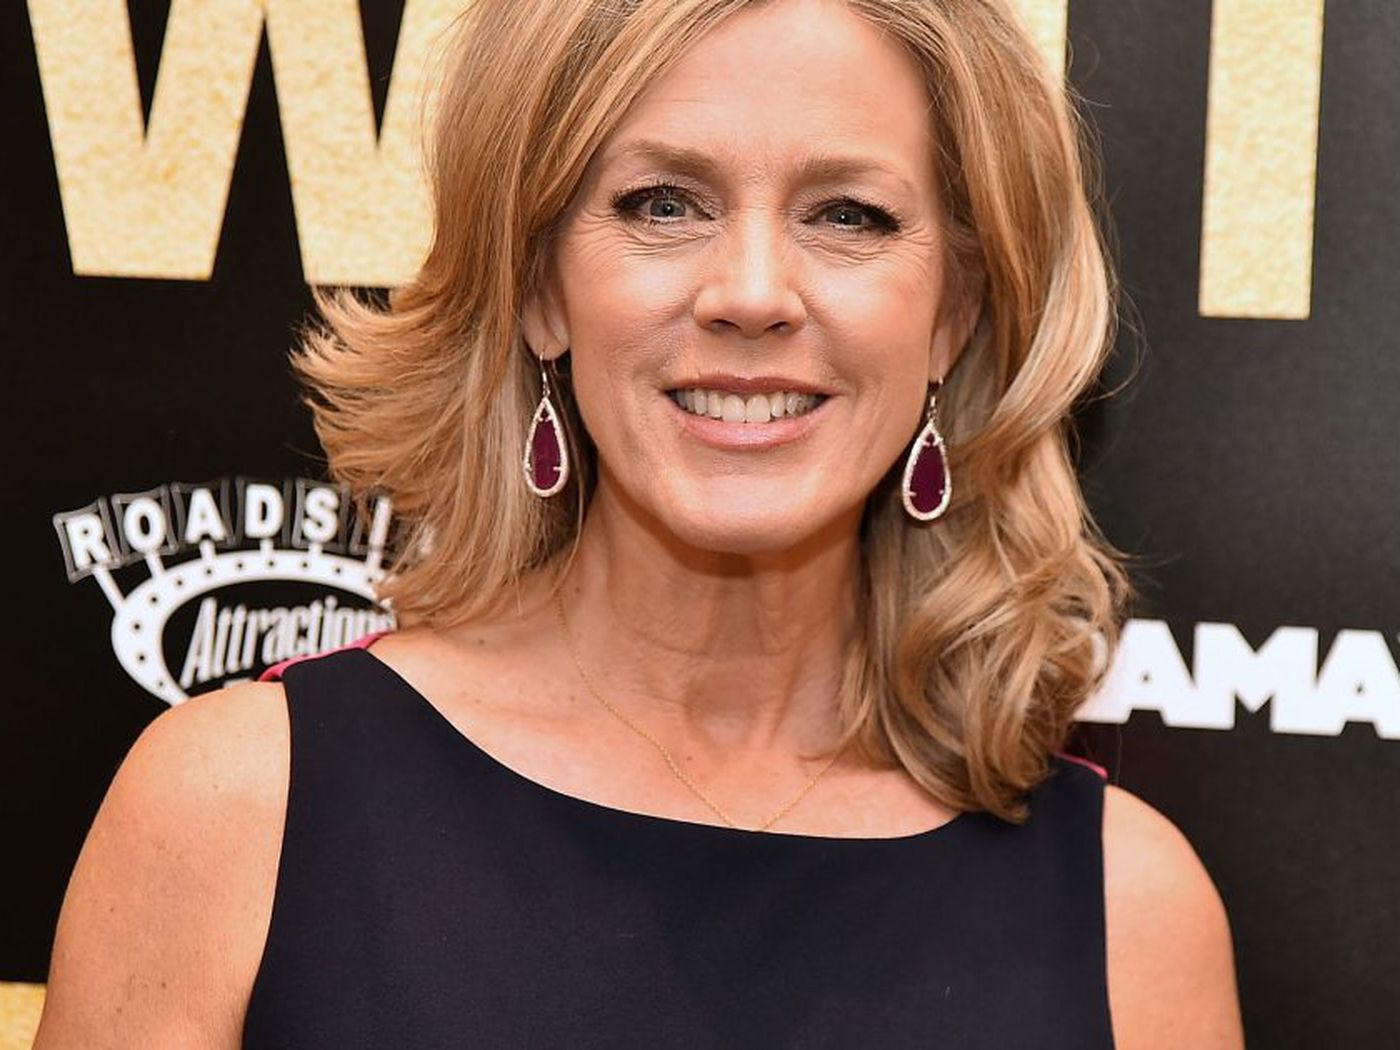 Fan Told Deborah Norville To Check For Thyroid Cancer How Can You